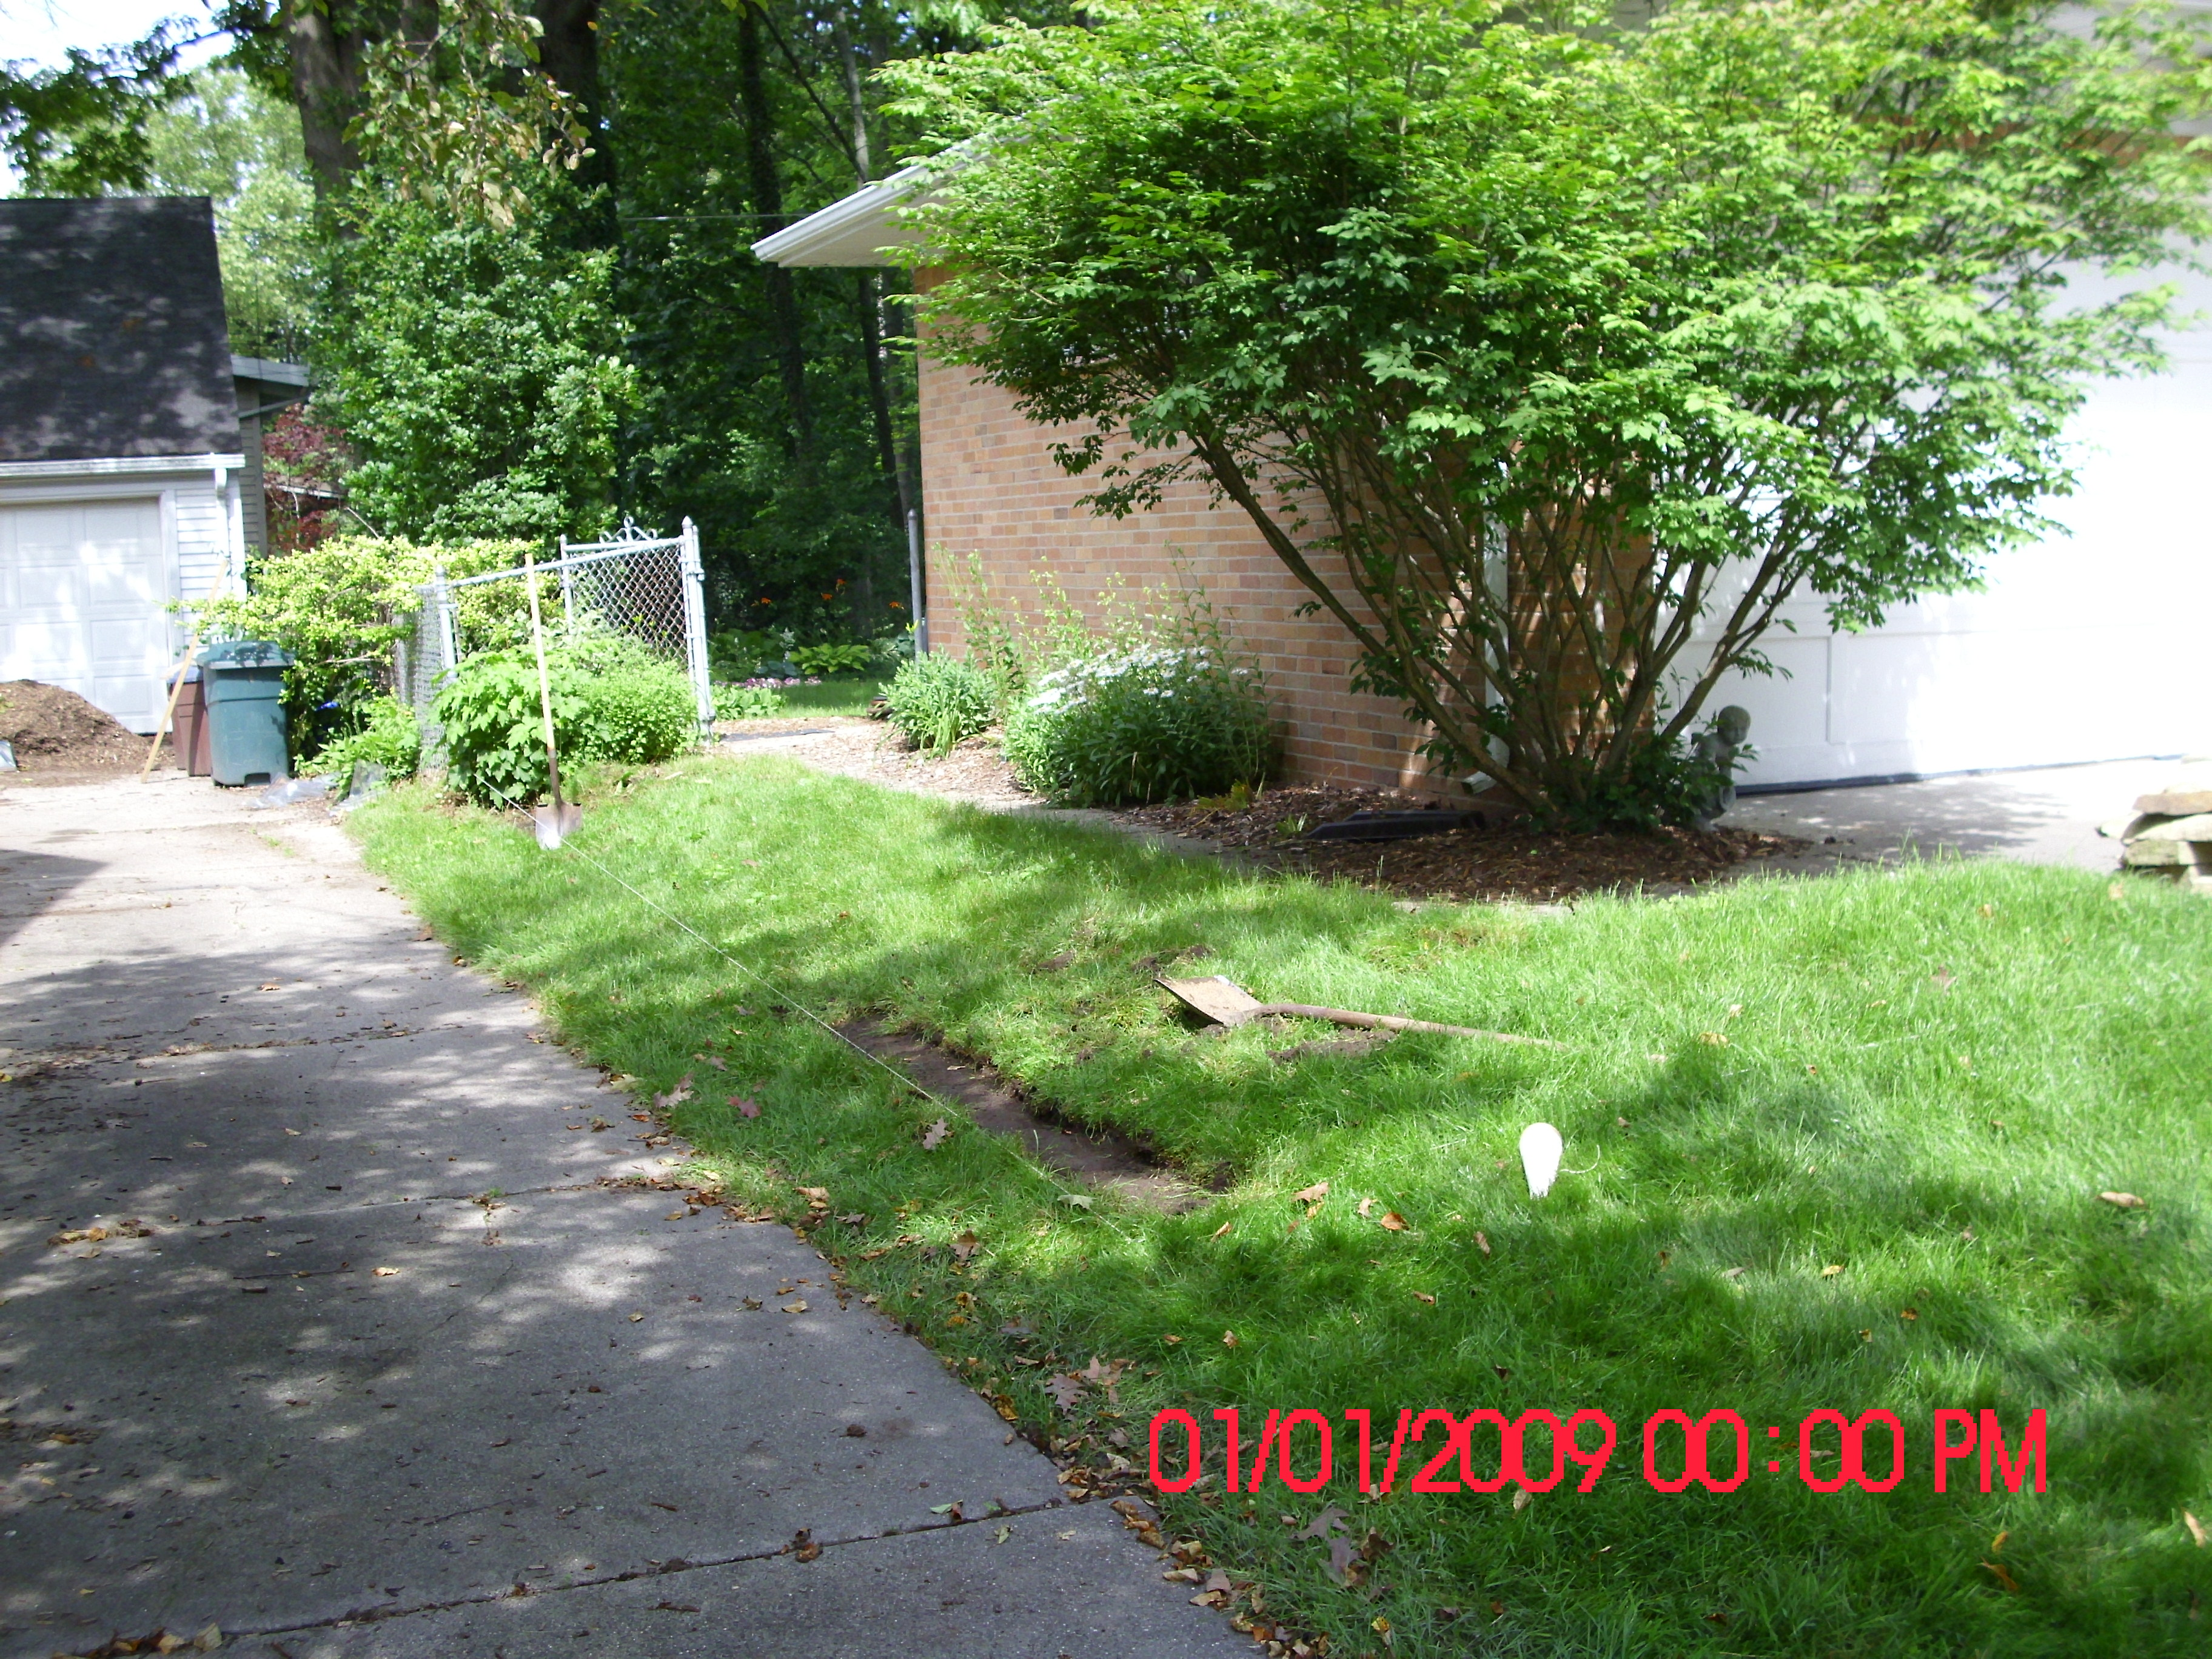 Jts landscaping lawn service for Garden lawn care service